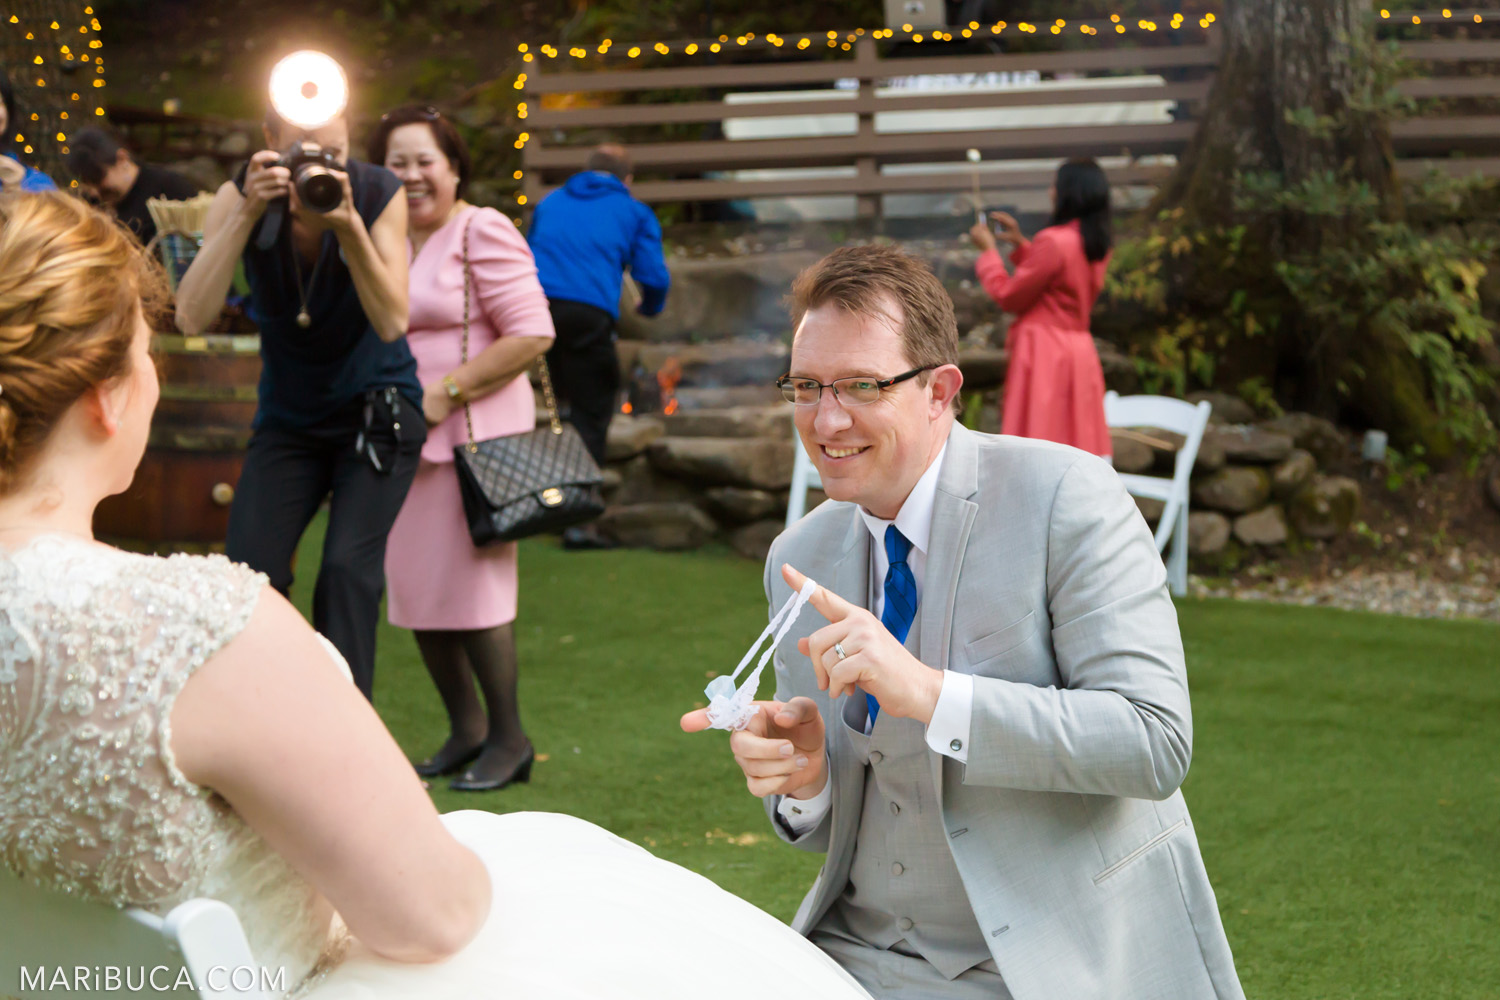 The groom shows bride's garter in the Saratoga Springs Wedding